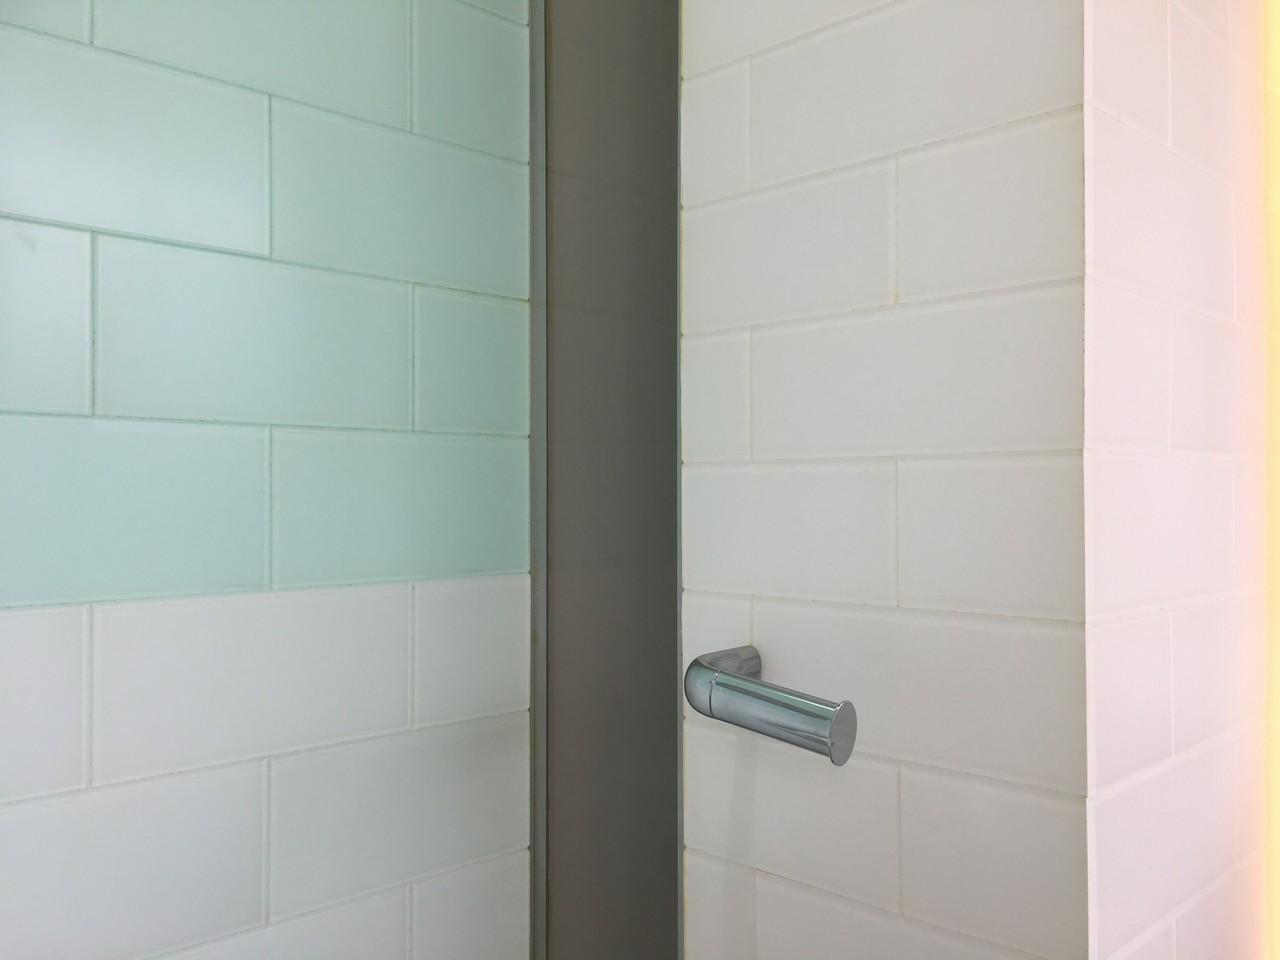 Water stains on walls in bathroom - Matte Stain Repellent Water Stain Repellent